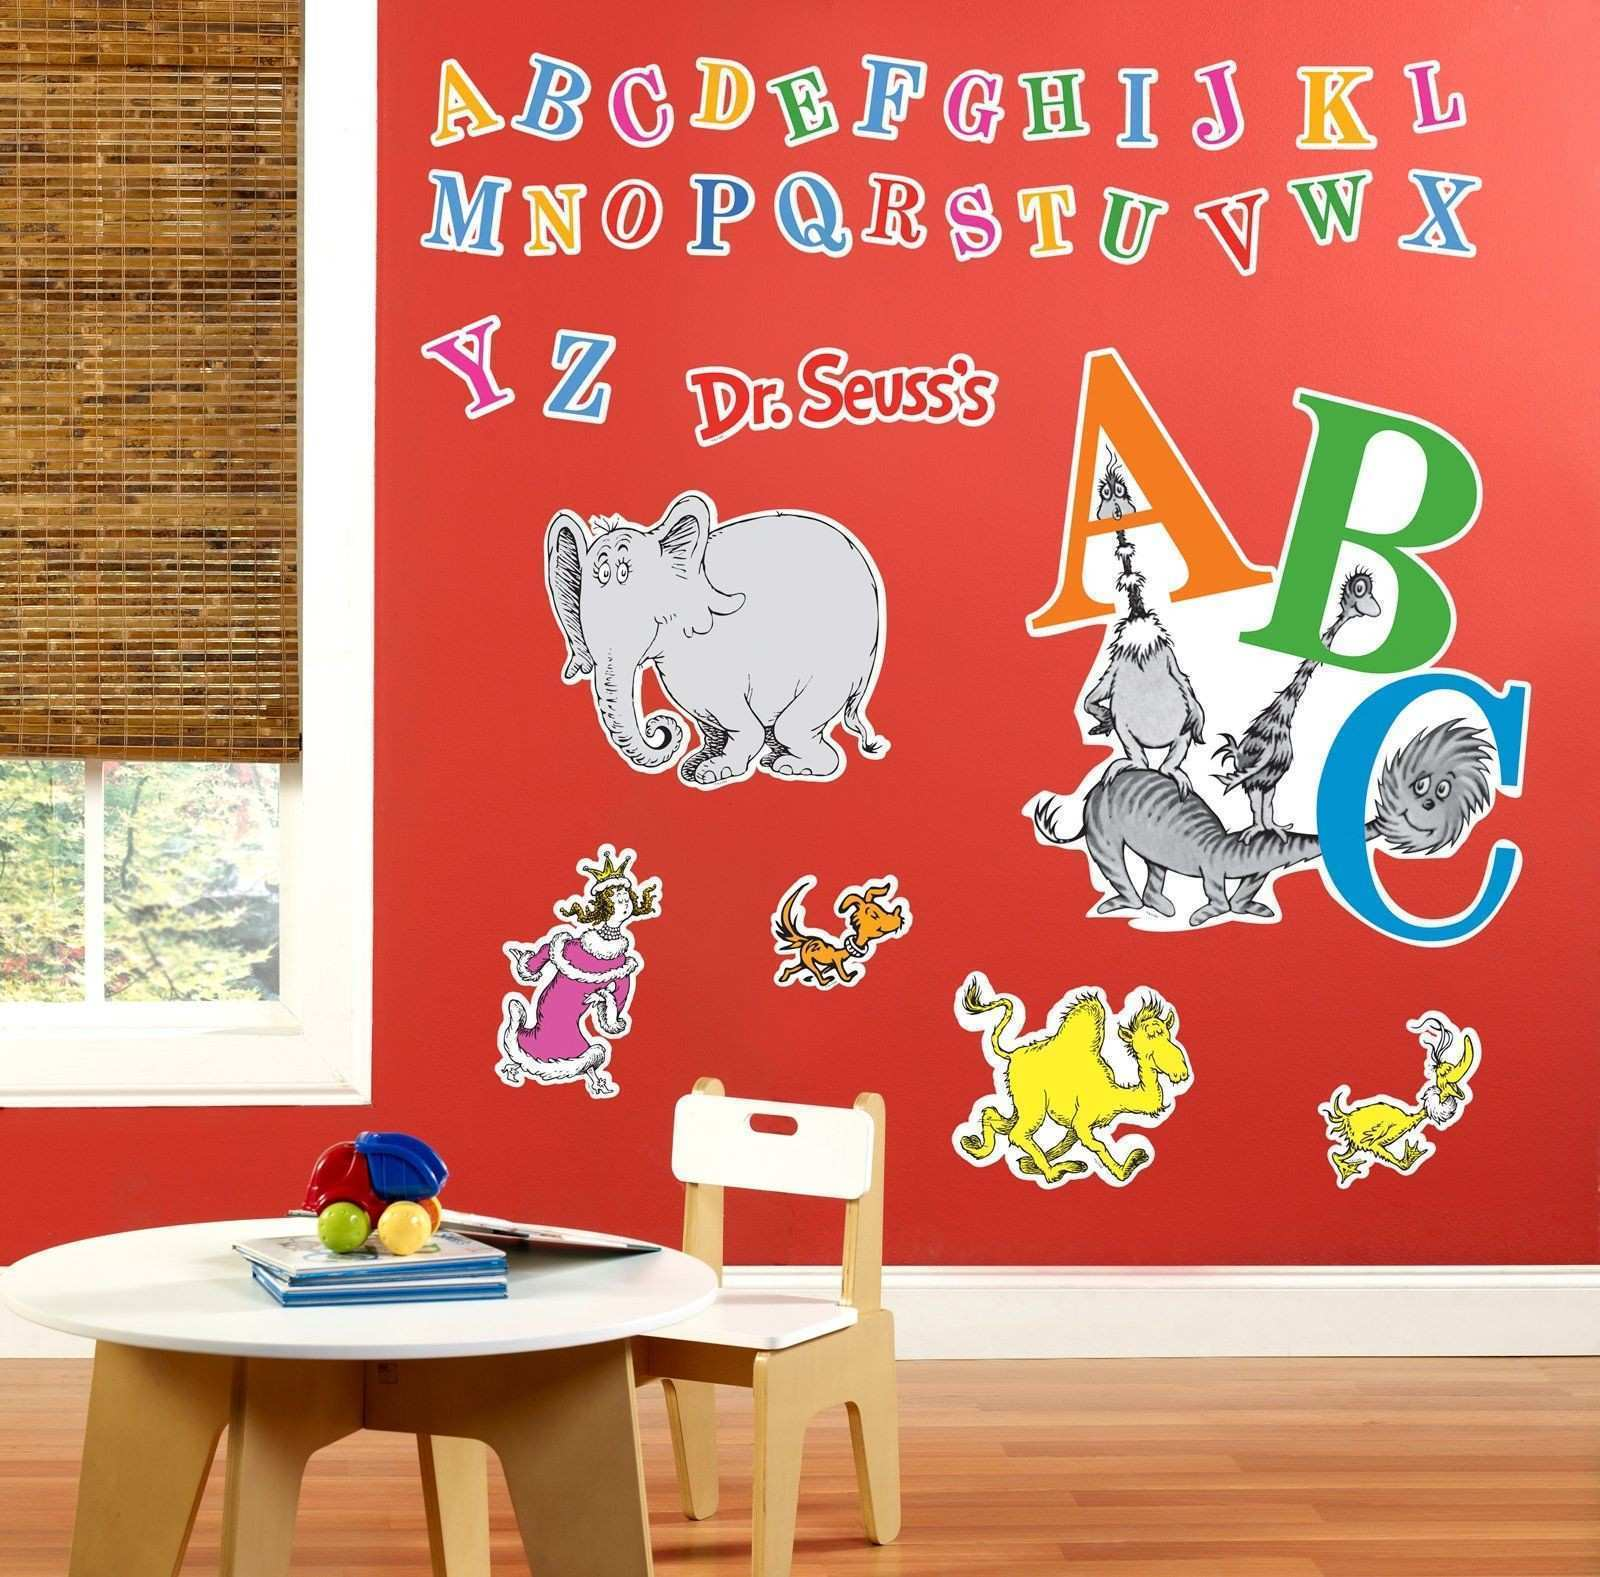 Dr Seuss ABC Giant Wall Decals from BirthdayExpress